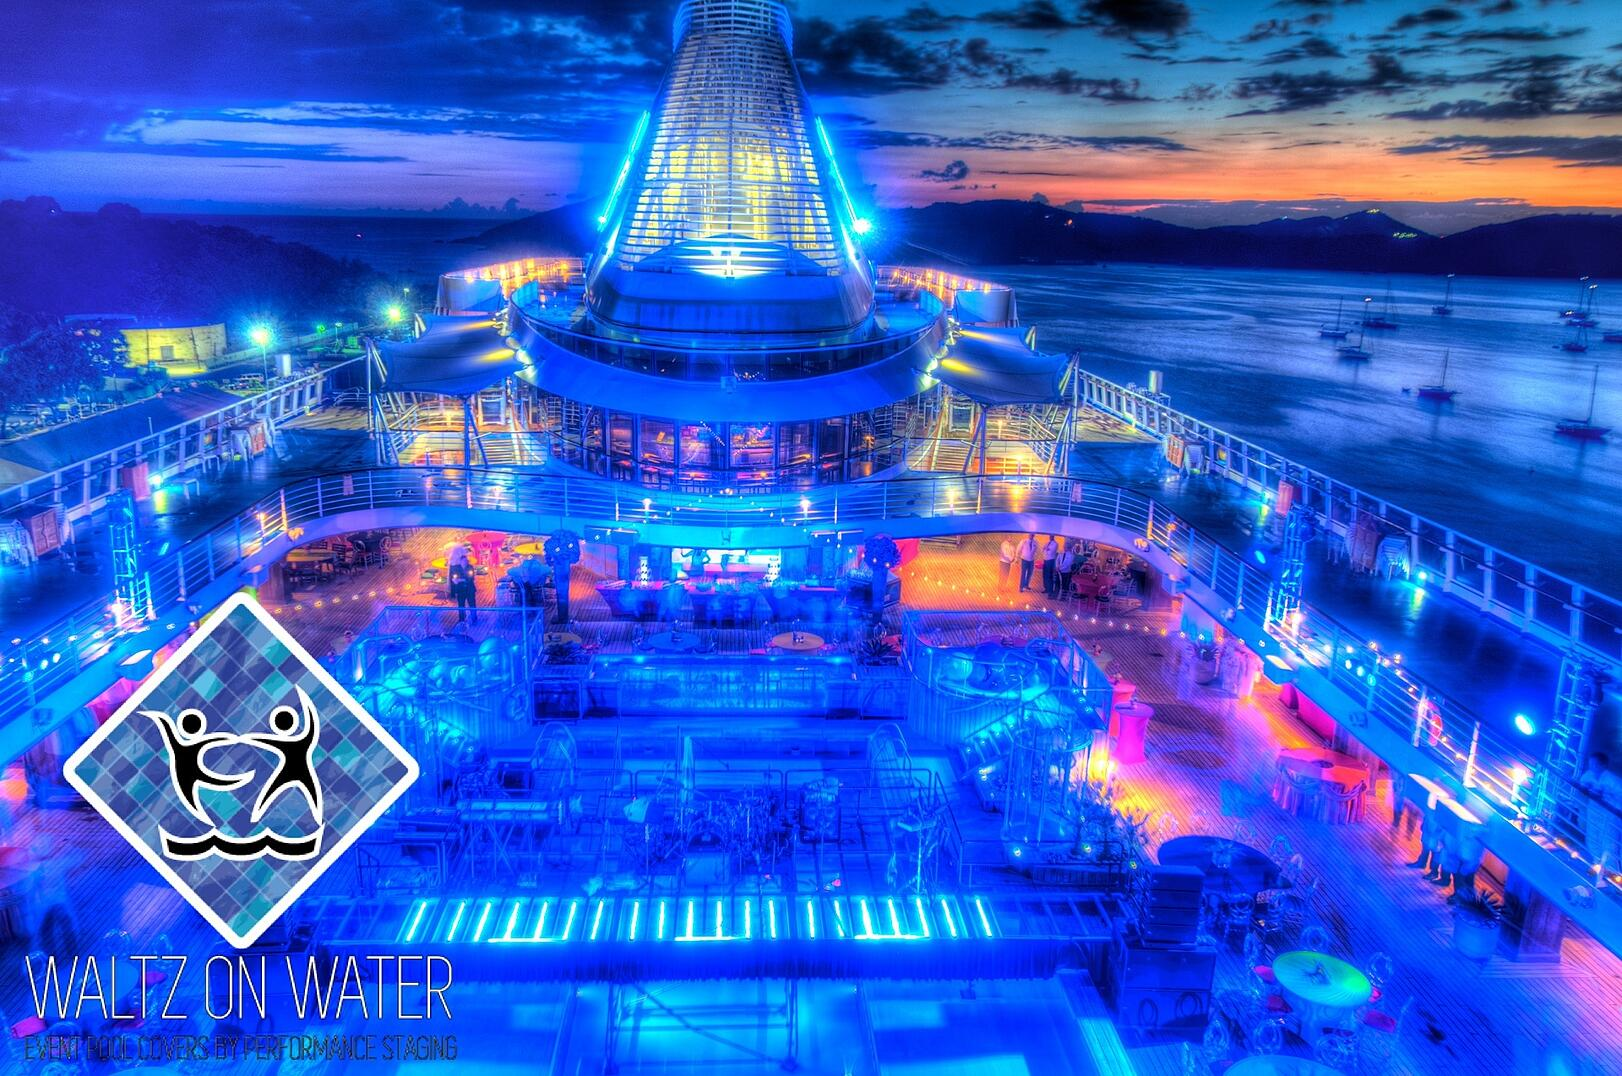 Waltz on Water by Performance Staging Pool cover on a cruise ship, St. Thomas, USVI